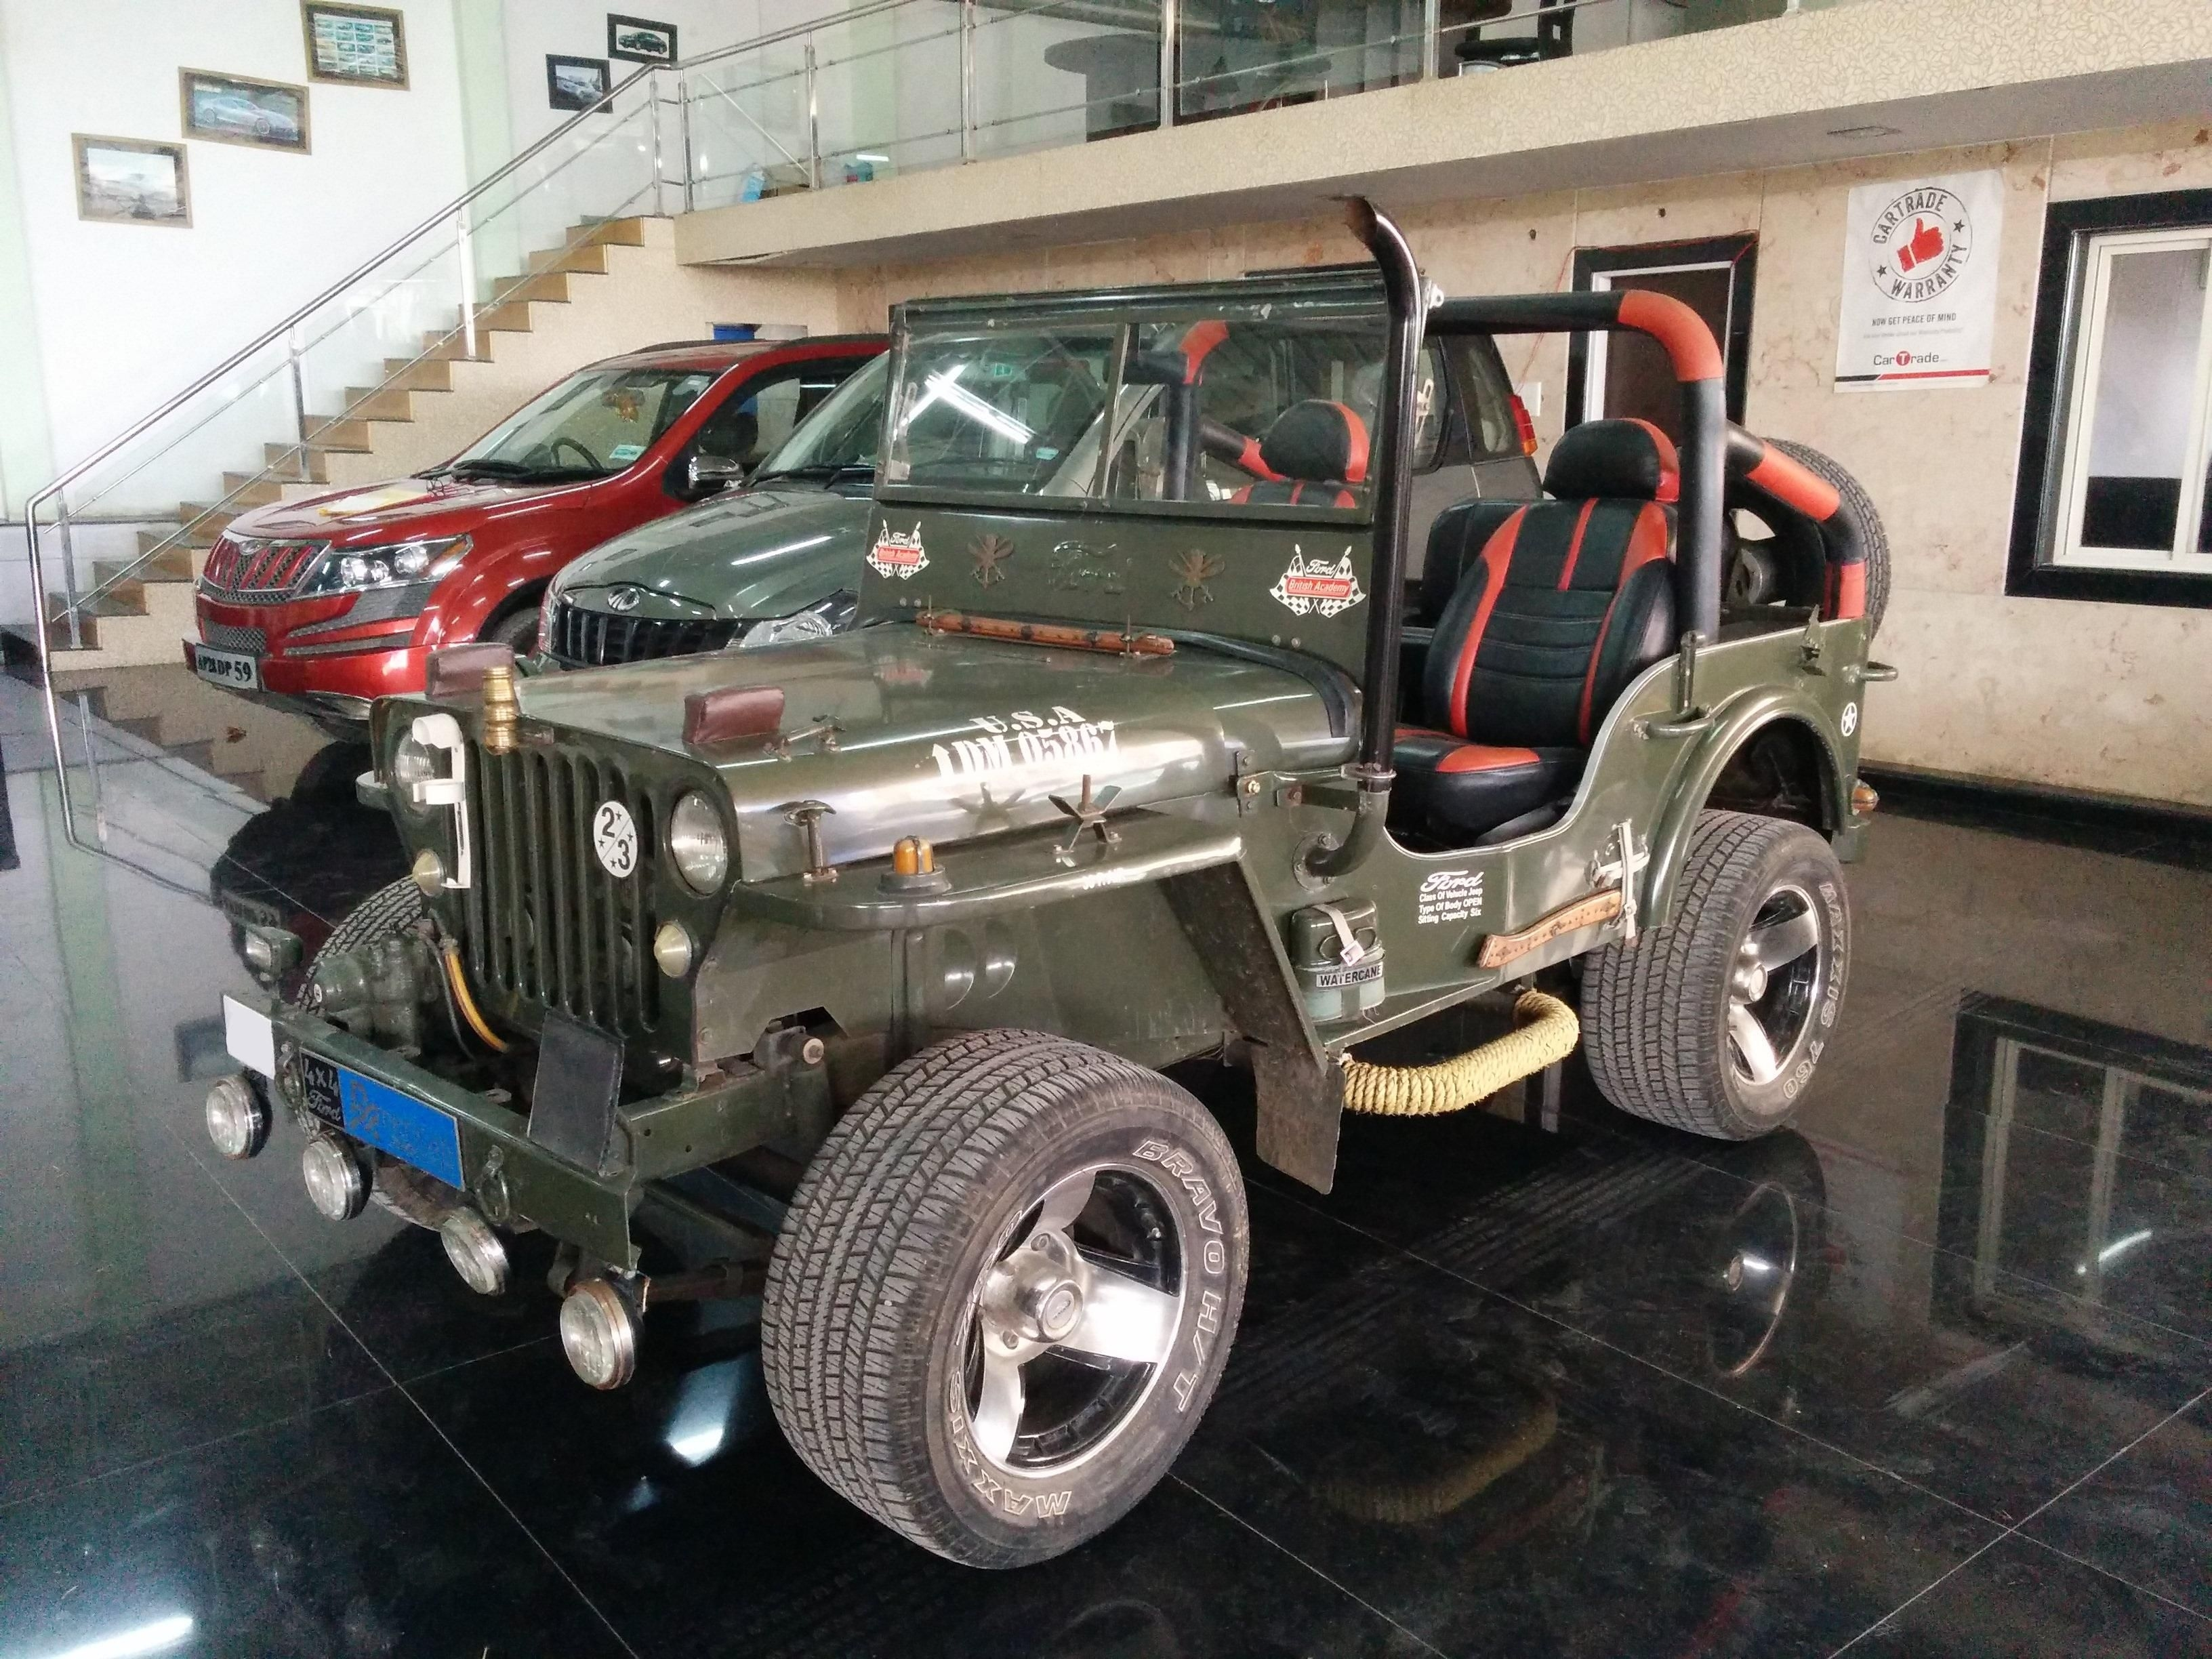 Mahindra Jeep Car for Sale in Hyderabad- (Id: 1415319555) - Droom